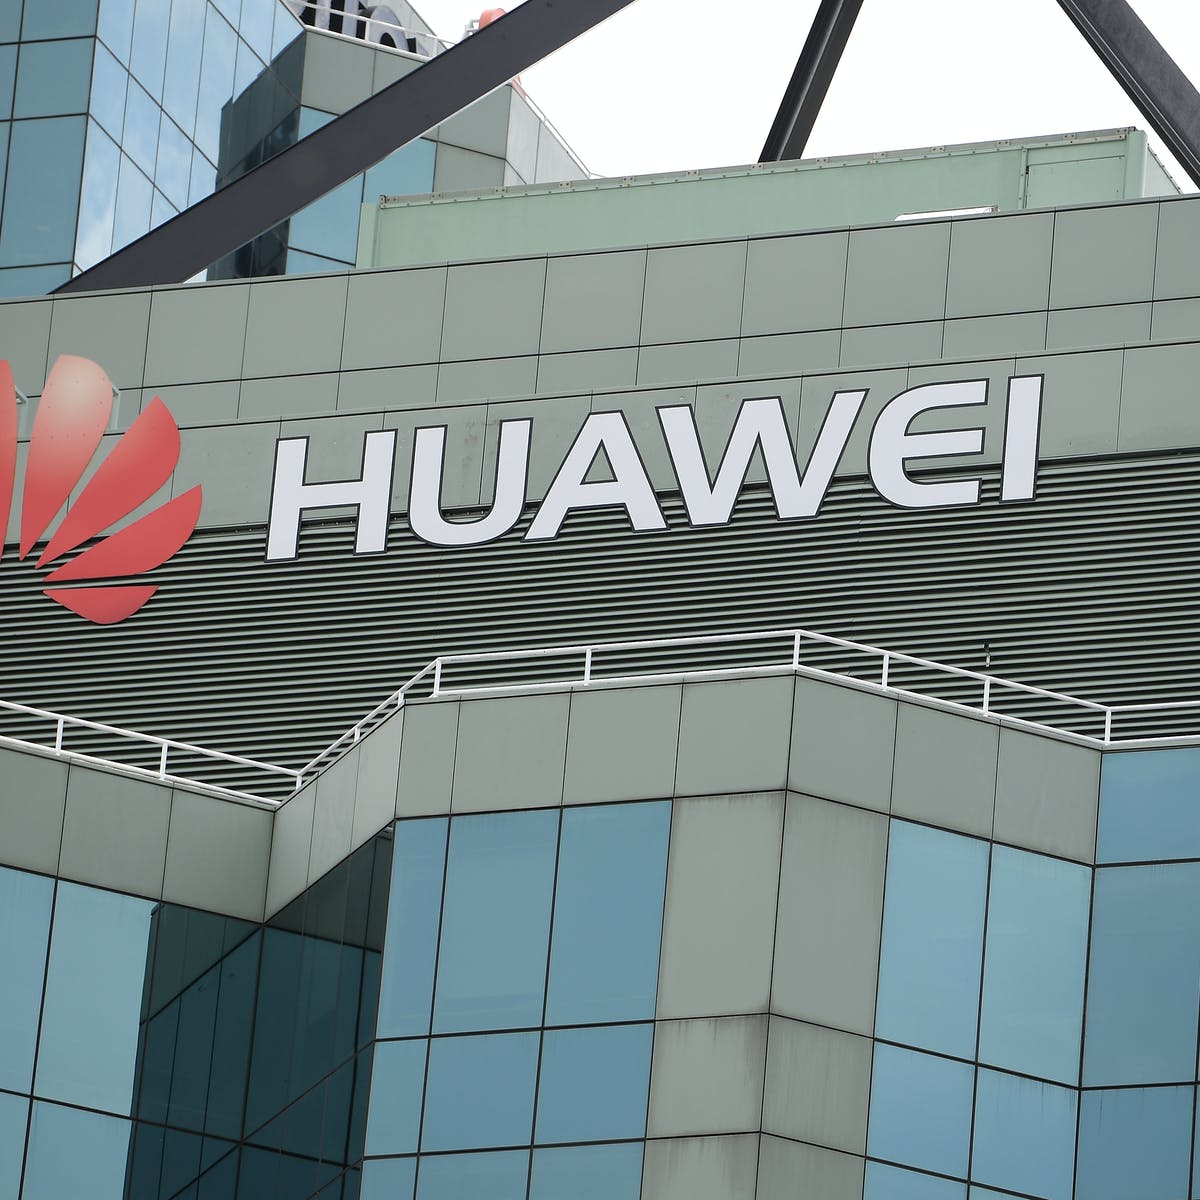 Trump administration labels Huawei, Hikvision as backed by Chinese military - document